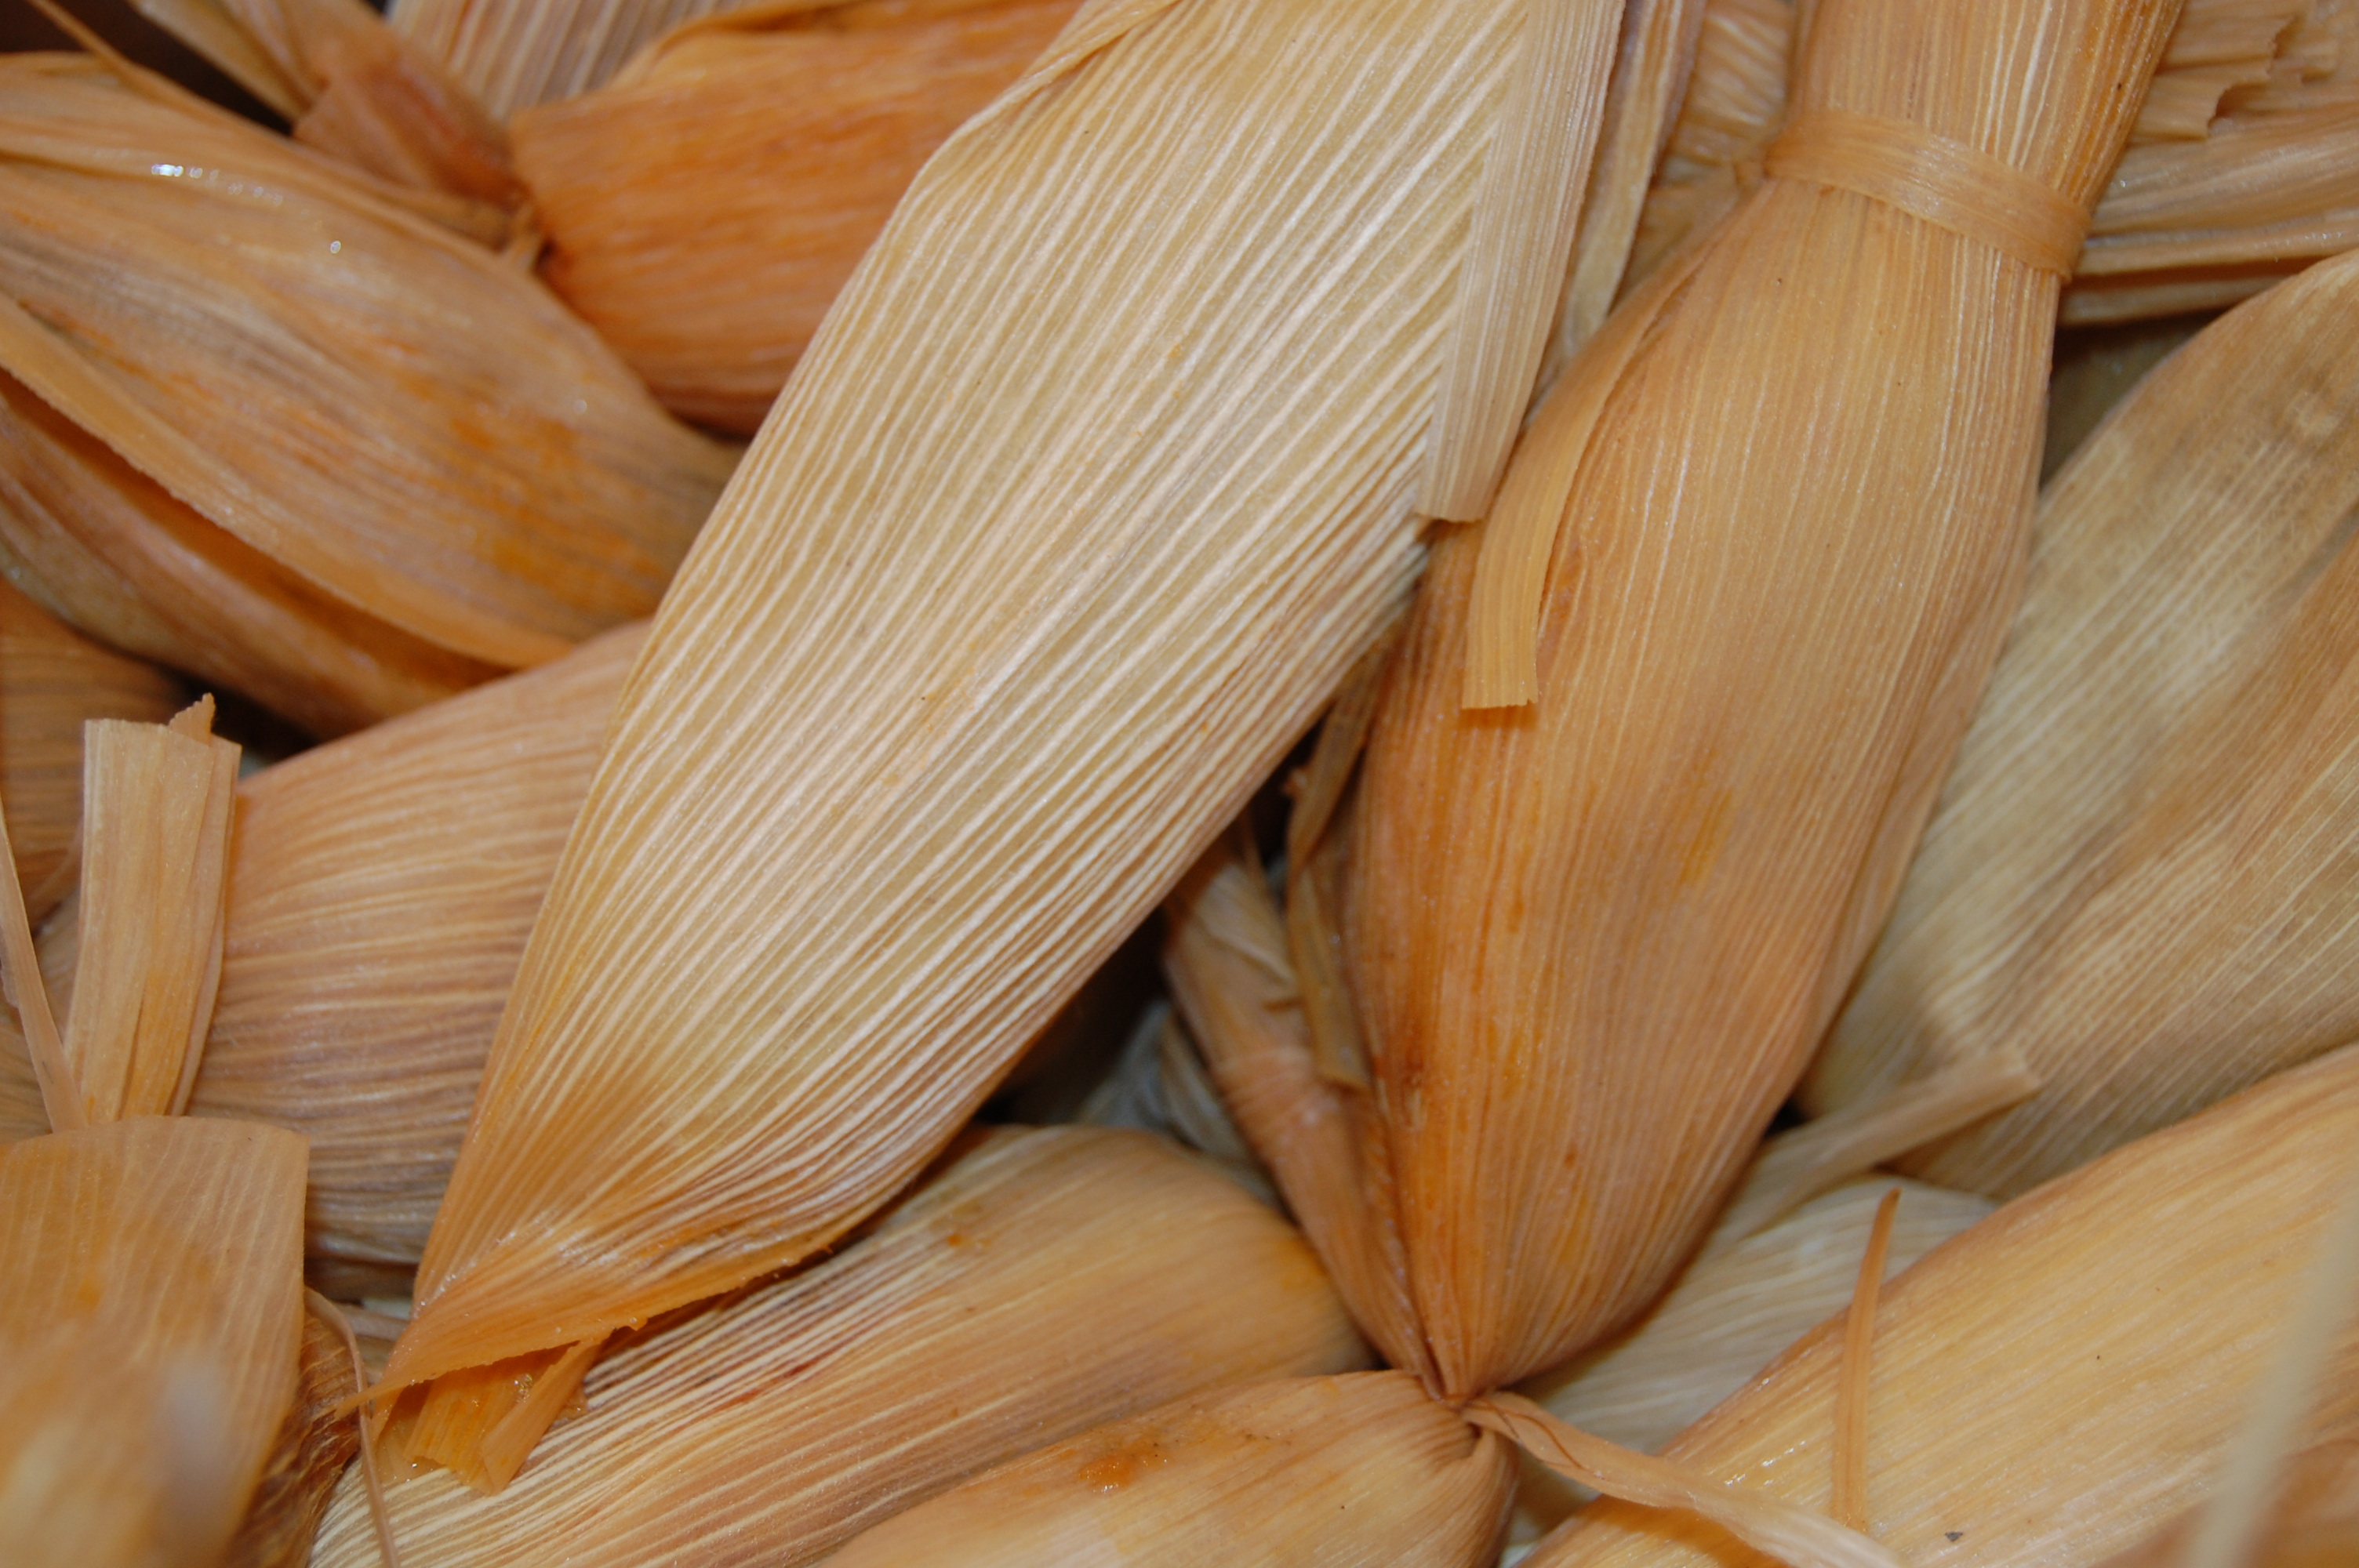 Sandra's Kitchen Studio: Tamales